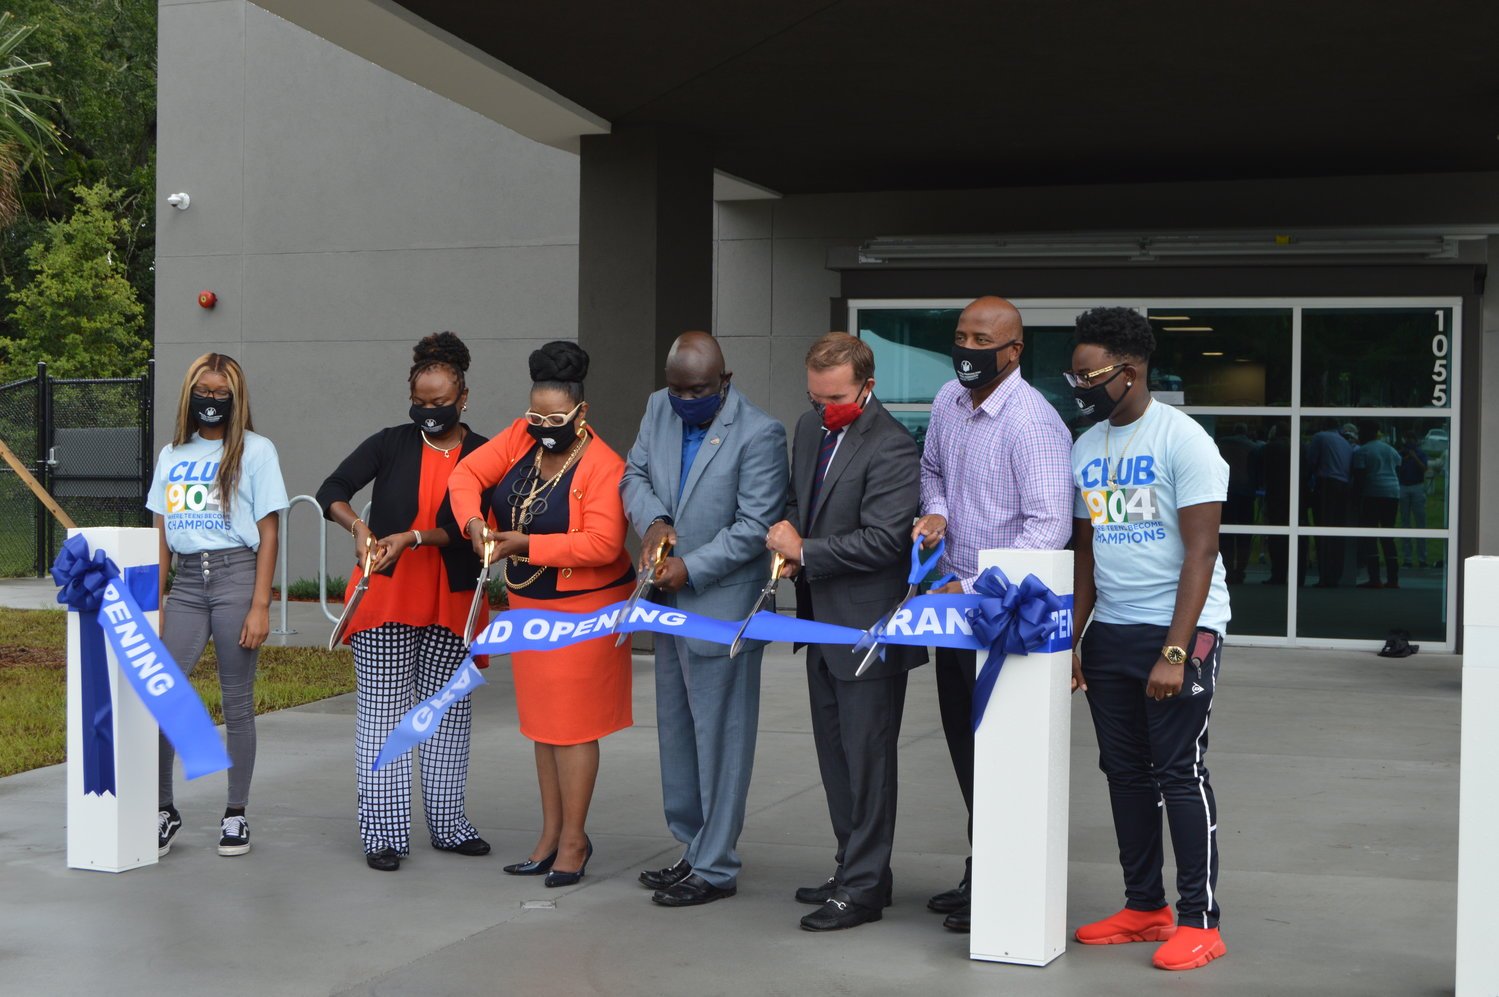 Grand opening of MWYF's new teen center, Club 904, in 2020. Pictured from left: Student Athlete of the Year Mya Sudduth, MWYF board member Lezita Davis, council members Ju'Coby Pittman and Sam Newby, Mayor Lenny Curry, Mal Washington, MWYF Student Board of Directors President Ny'Reon Shuman.